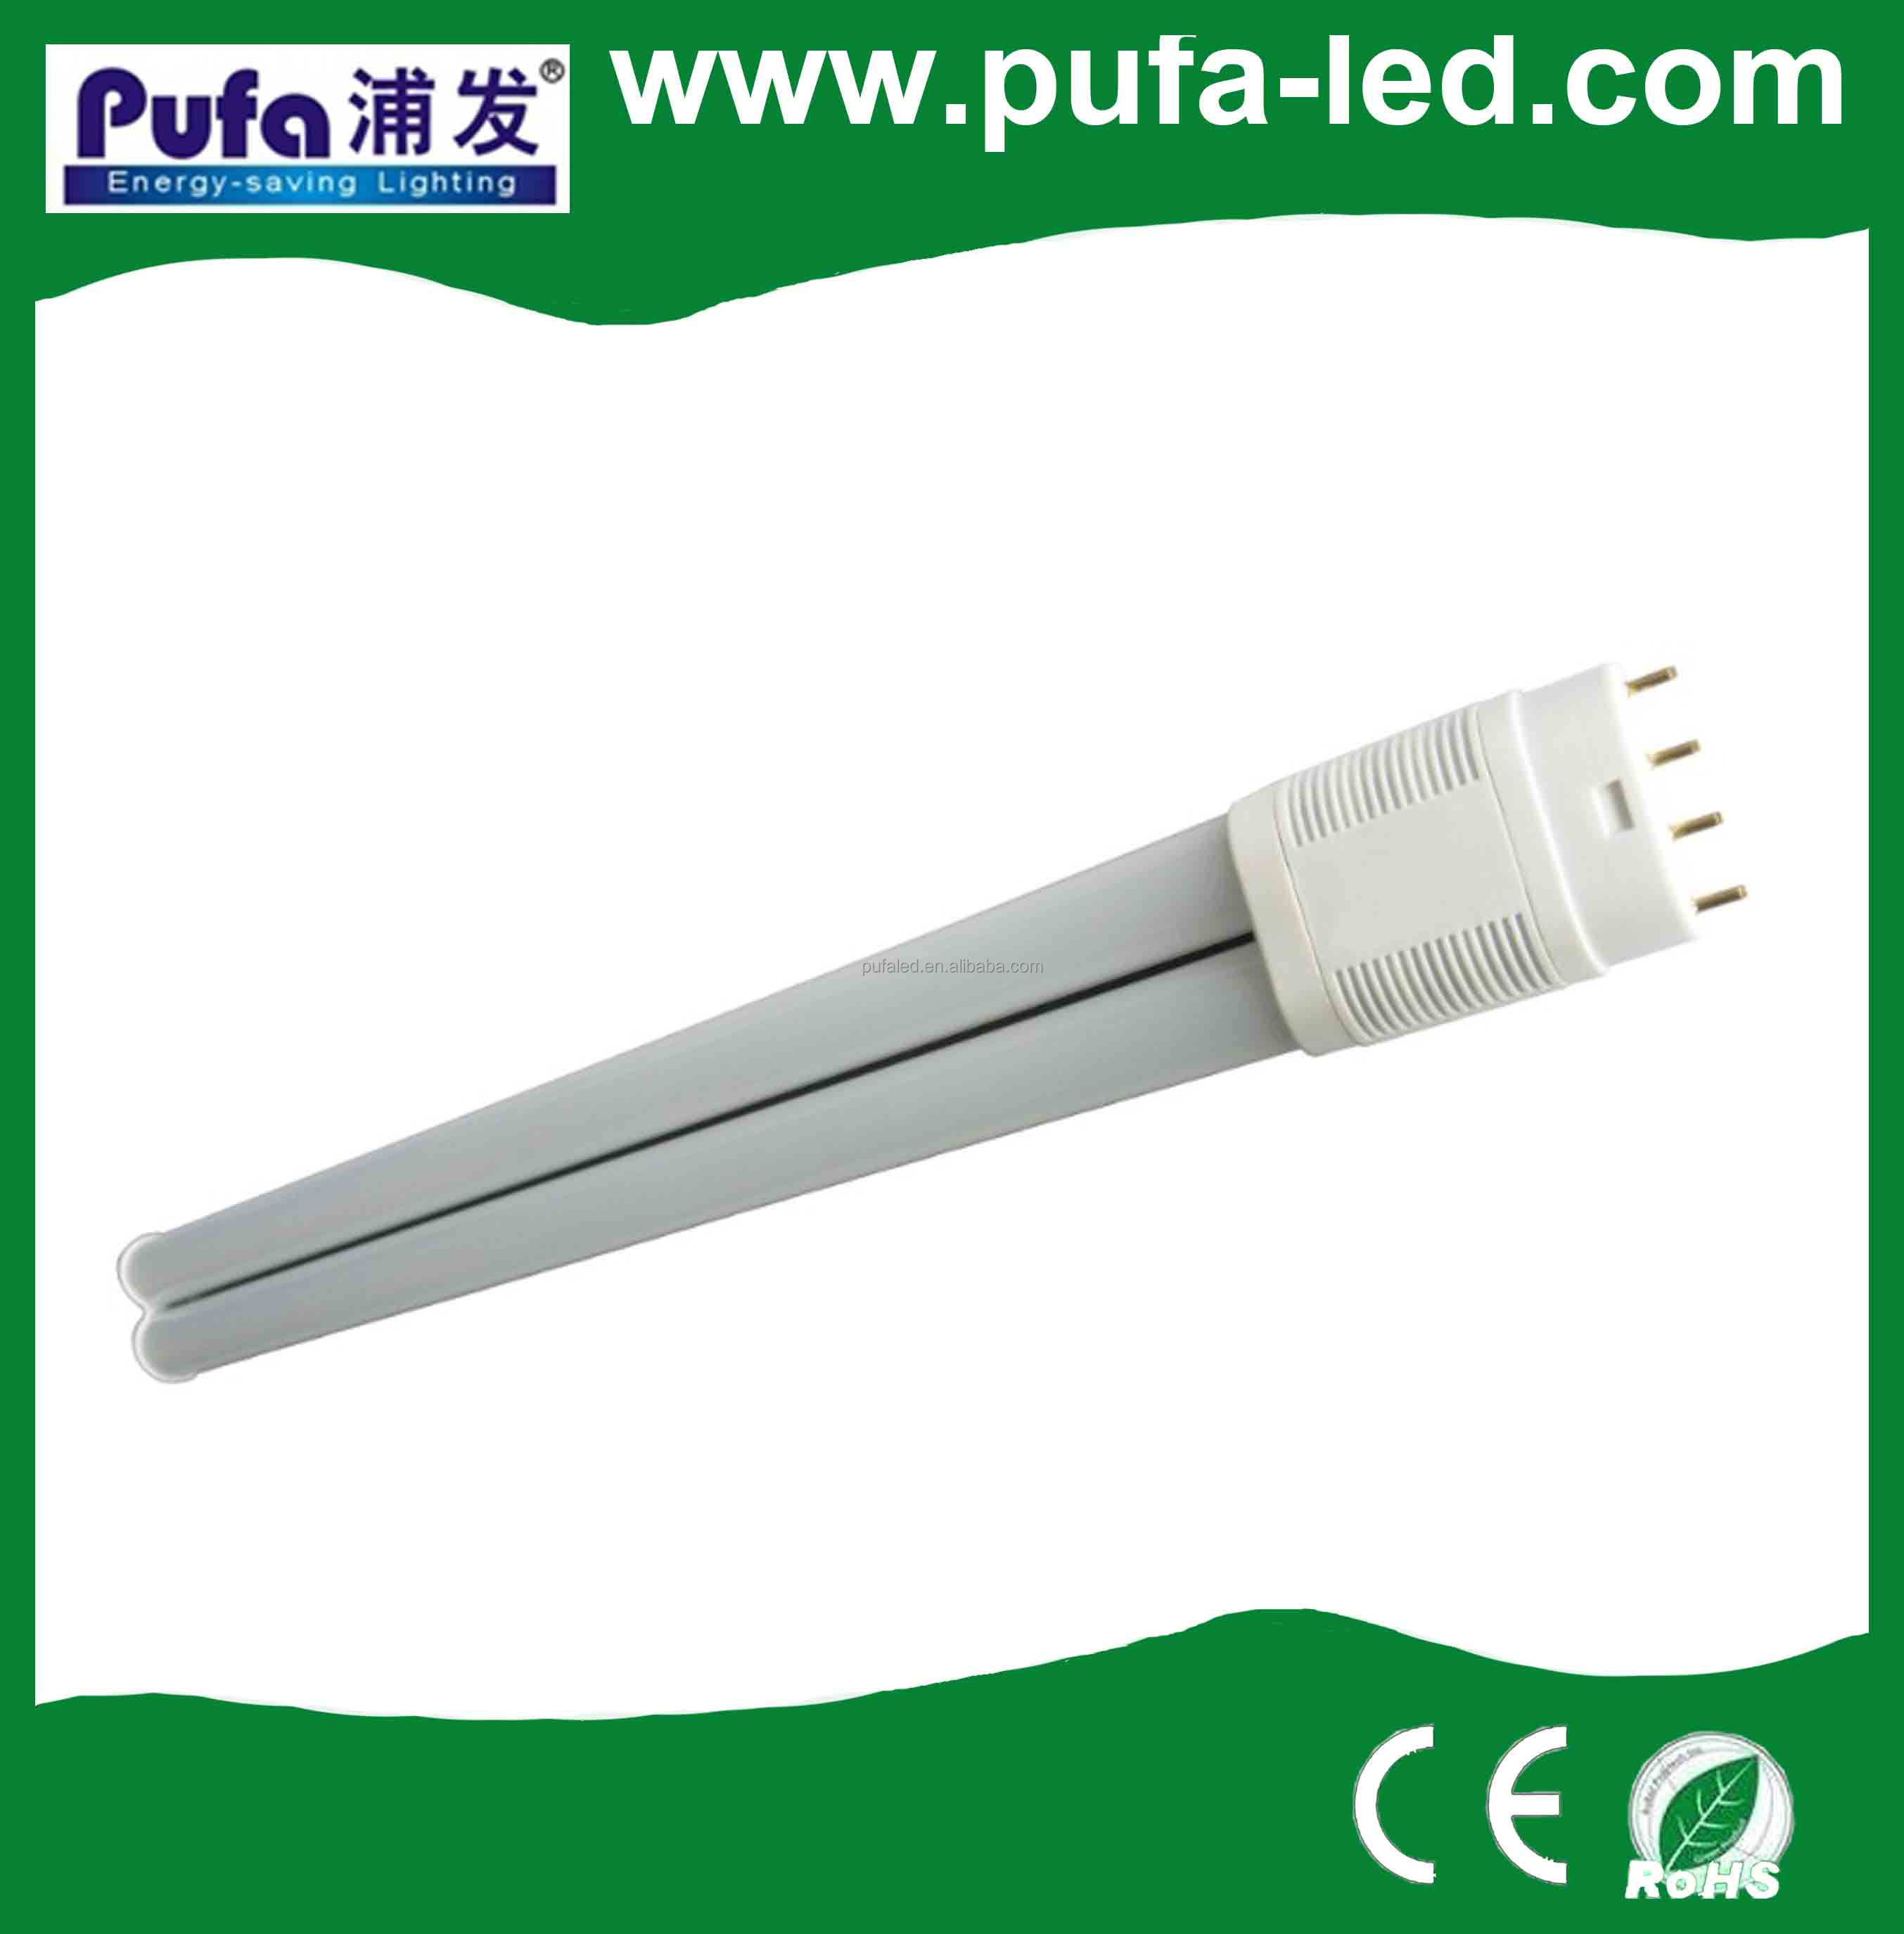 CE ROHS LED plug in tube lamp G24/E27/G23/2G11 Base Type and Bulb Lights Item Type led PL 11w lamp